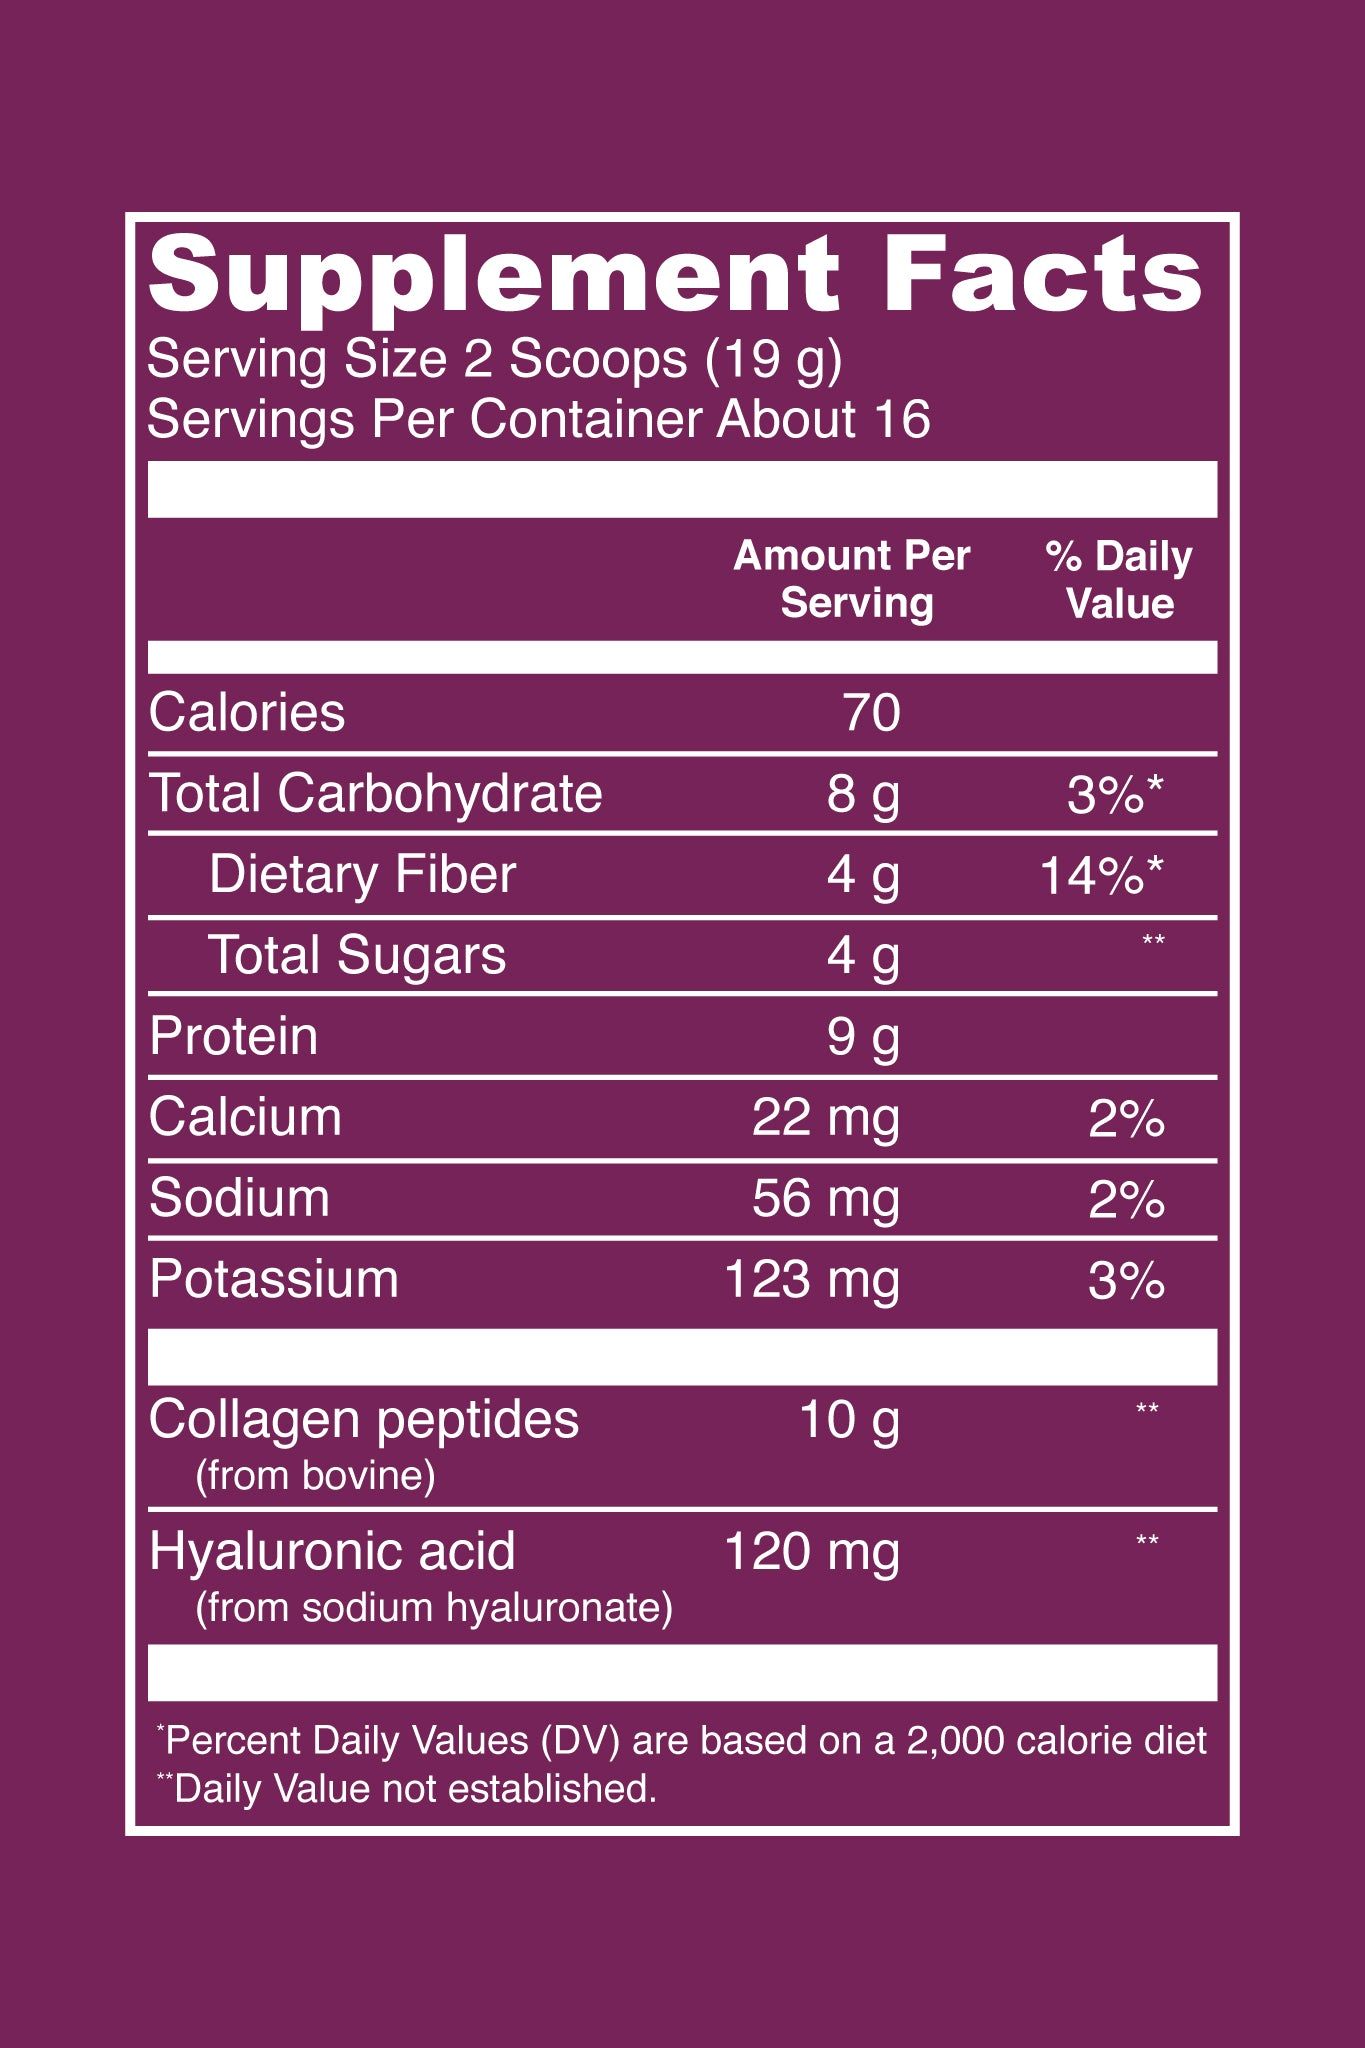 Blackberry Collagen Blast Supplement Facts. Serving Size: 2 scoops (19 g). Servings Per Container: 16. Calories - 70 per serving. Total Carbohydrate - 8g per serving (1%* Daily Value). Total Sugars - 4 g per serving. Protein - 9 g per serving. Sodium - 56 mg per serving (2% Daily Value). Collagen peptides (from bovine hide) - 12 g per serving. Hyaluronic acid (from sodium hyaluronate) - 120 mg per serving. *Percent Daily Values (DV) are based on a 2,000 calorie diet.